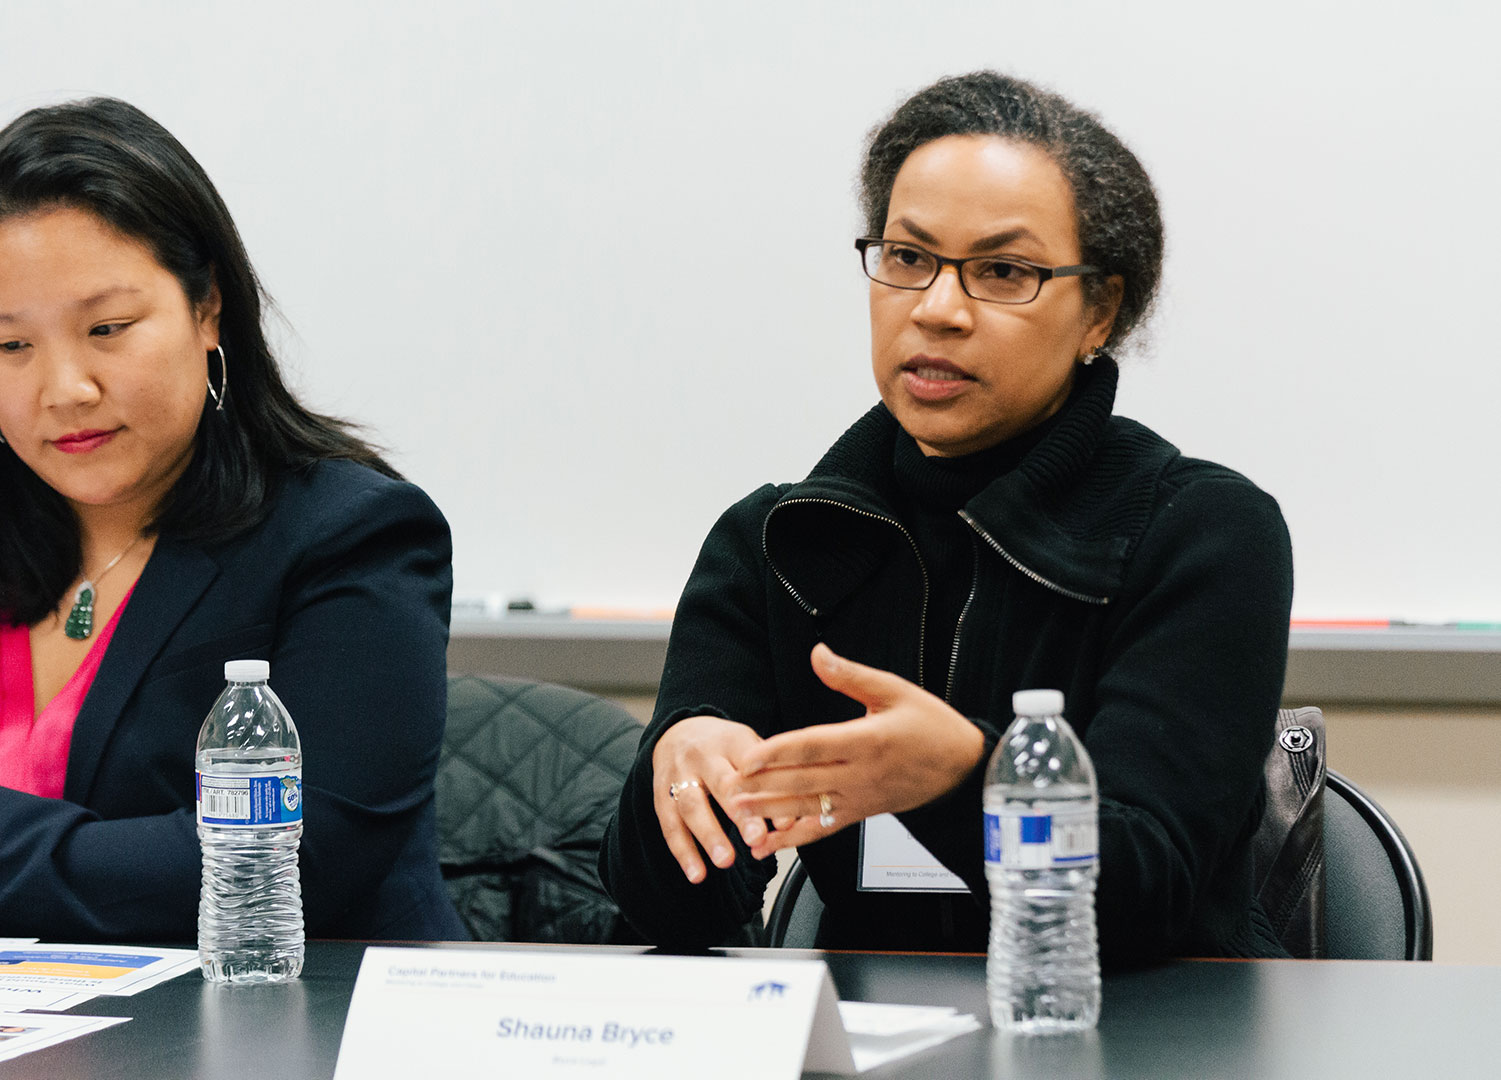 Shauna C. Bryce speaking on a Capital Partners for Education (CPE) Legal Advocacy panel moderated by Deborah Tang of Major, Lindsey & Africa and hosted by George Washington University Law School in Washington, DC.